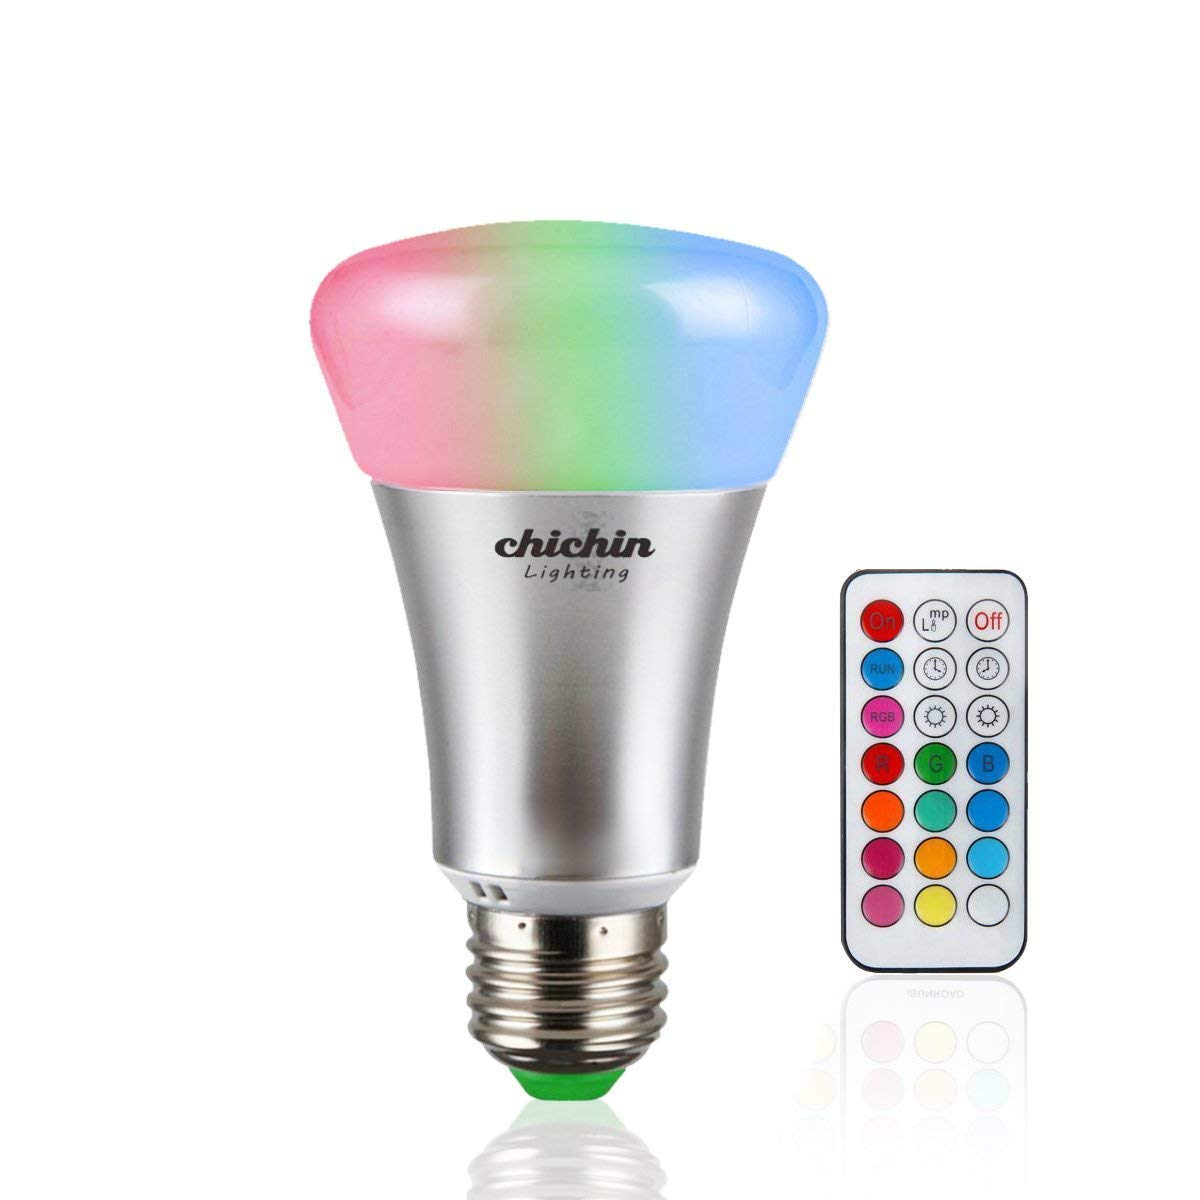 ChiChiChinLighting RGBW LED Bulb with Remote Control 2-in-1 10 Watts Color Changing LED Bulb One Button Cool White Color Changing Light Bulb with IR Remote Control, RGB+W Dimmable E26 RGB Light Bulbs